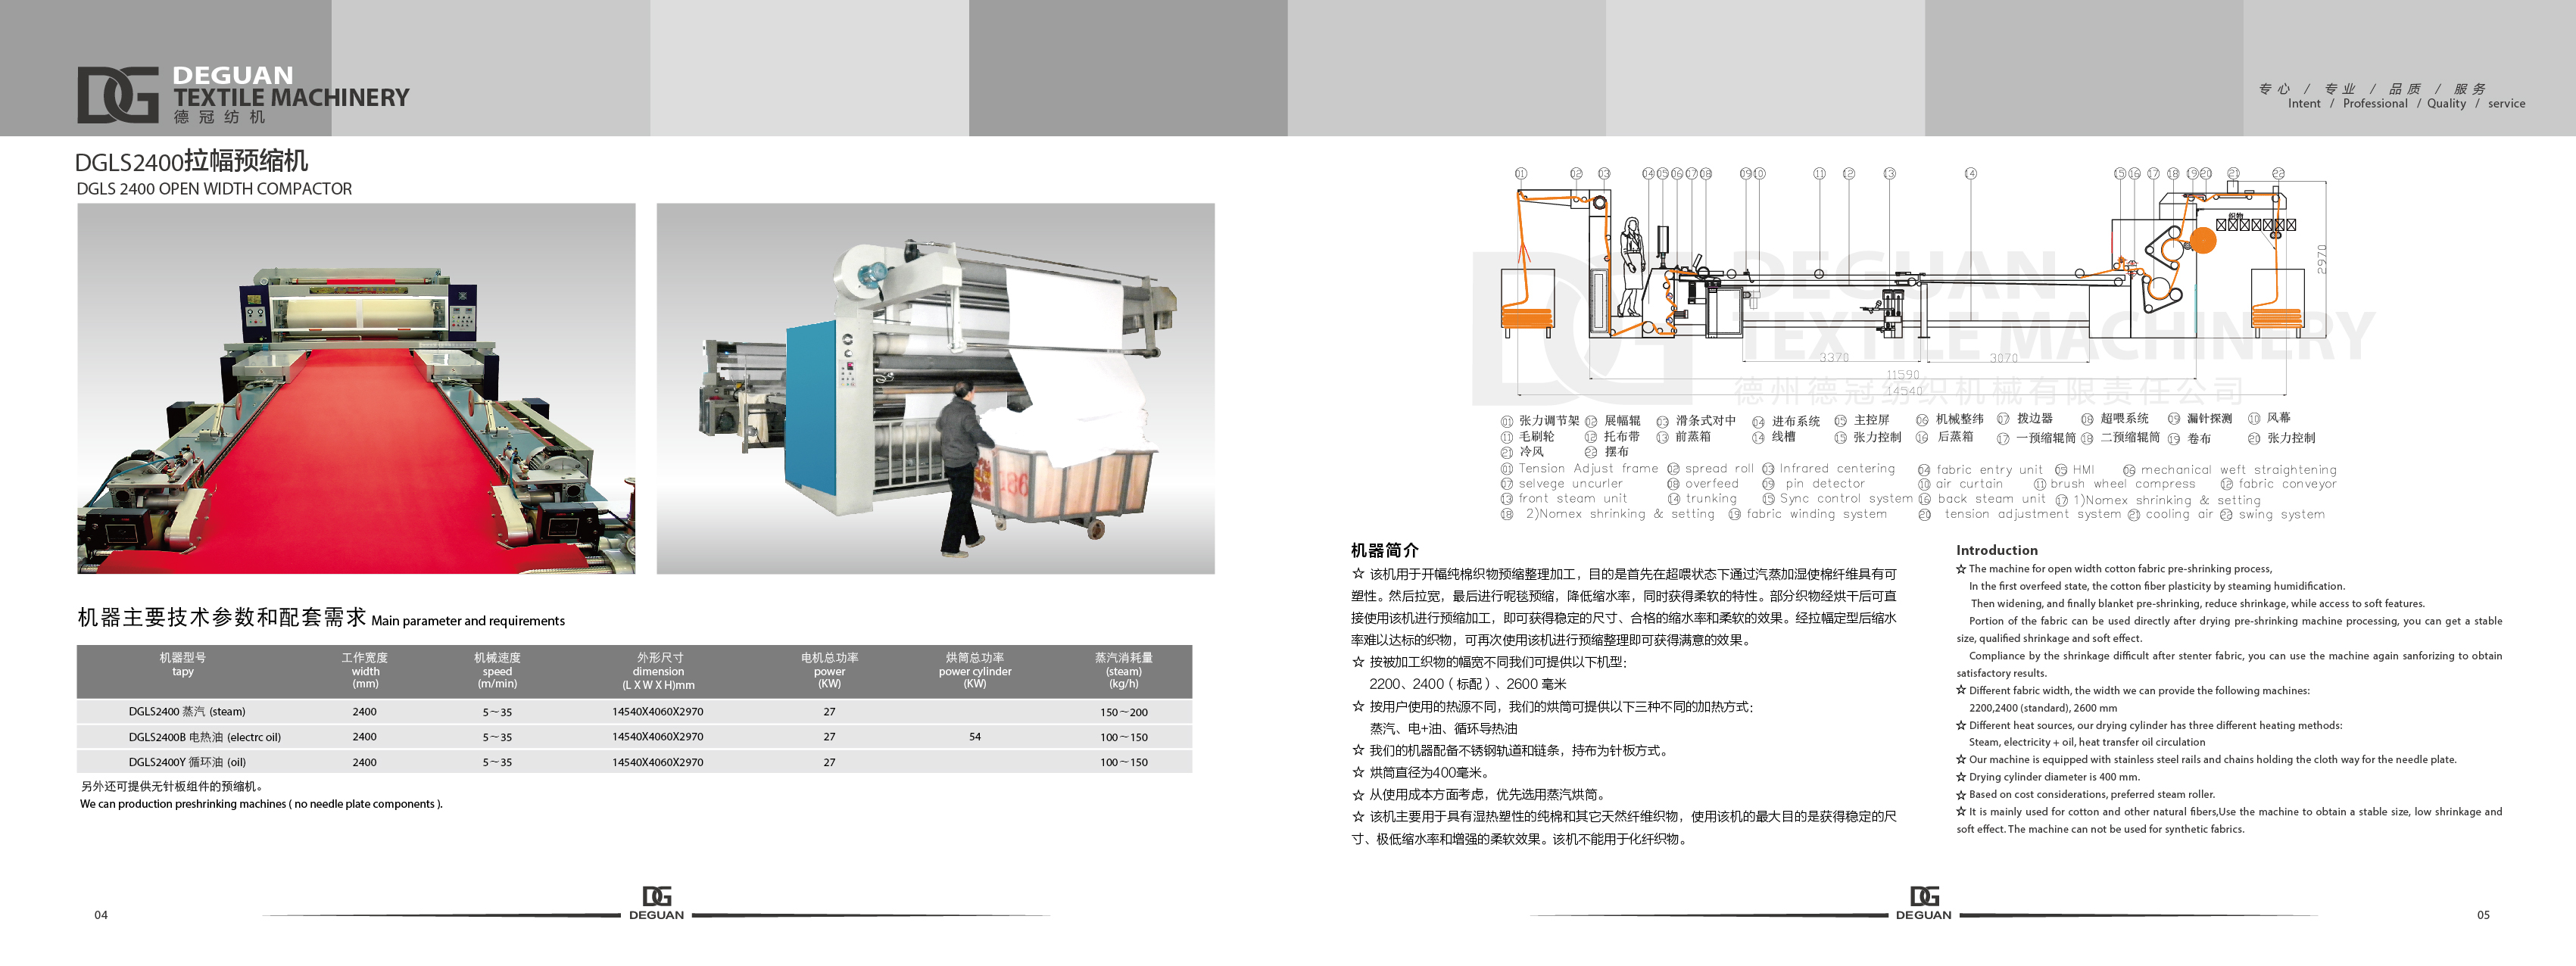 Open Width Compactor used for knitting fabric